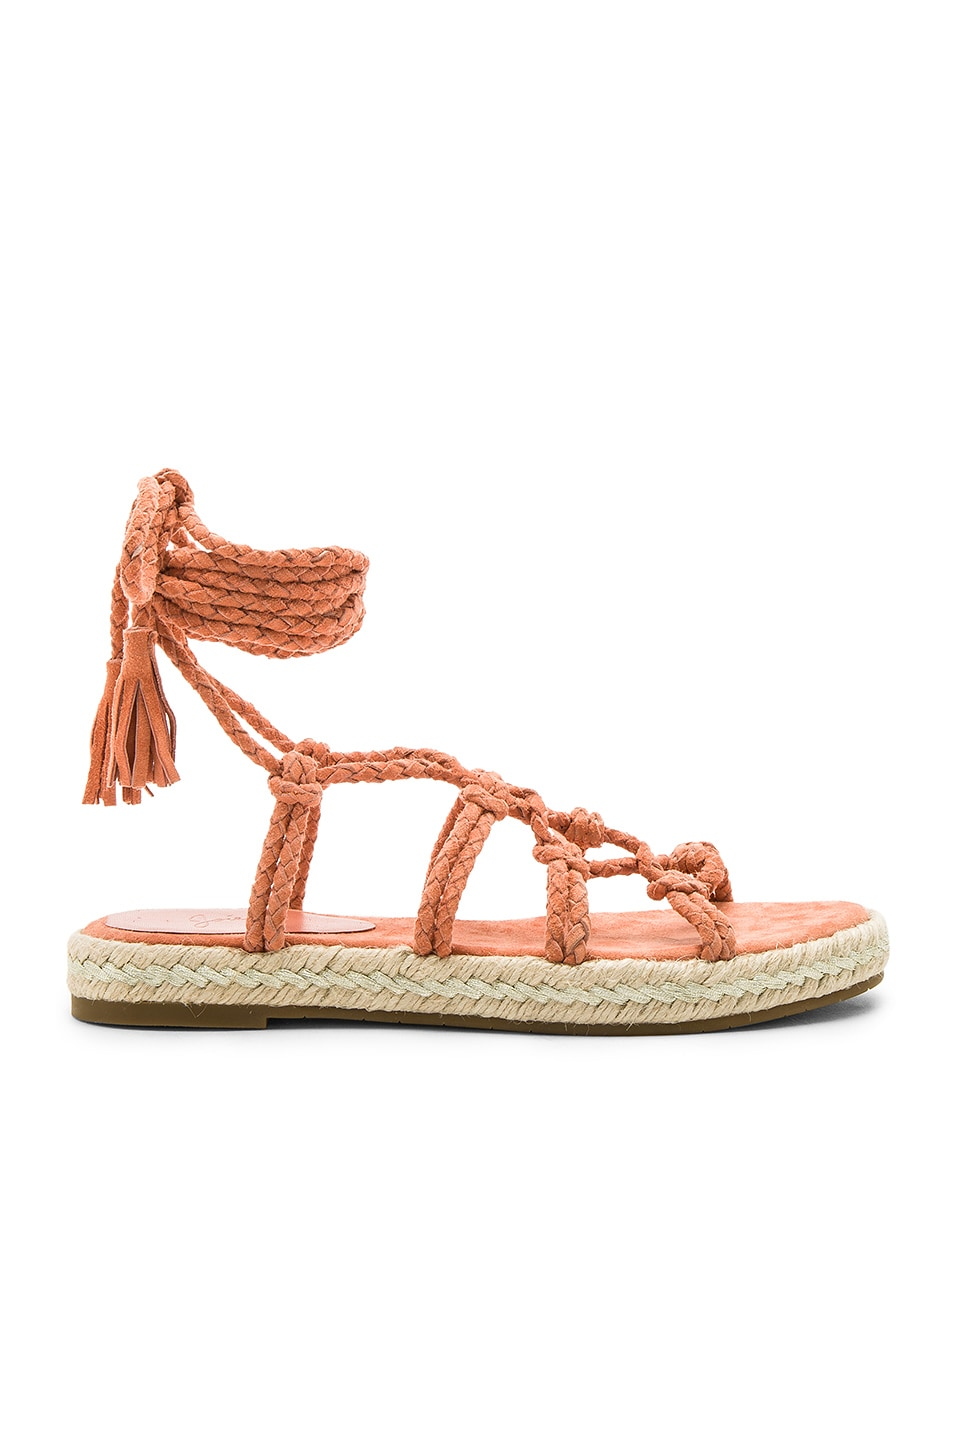 Ceasar Sandal by Joie